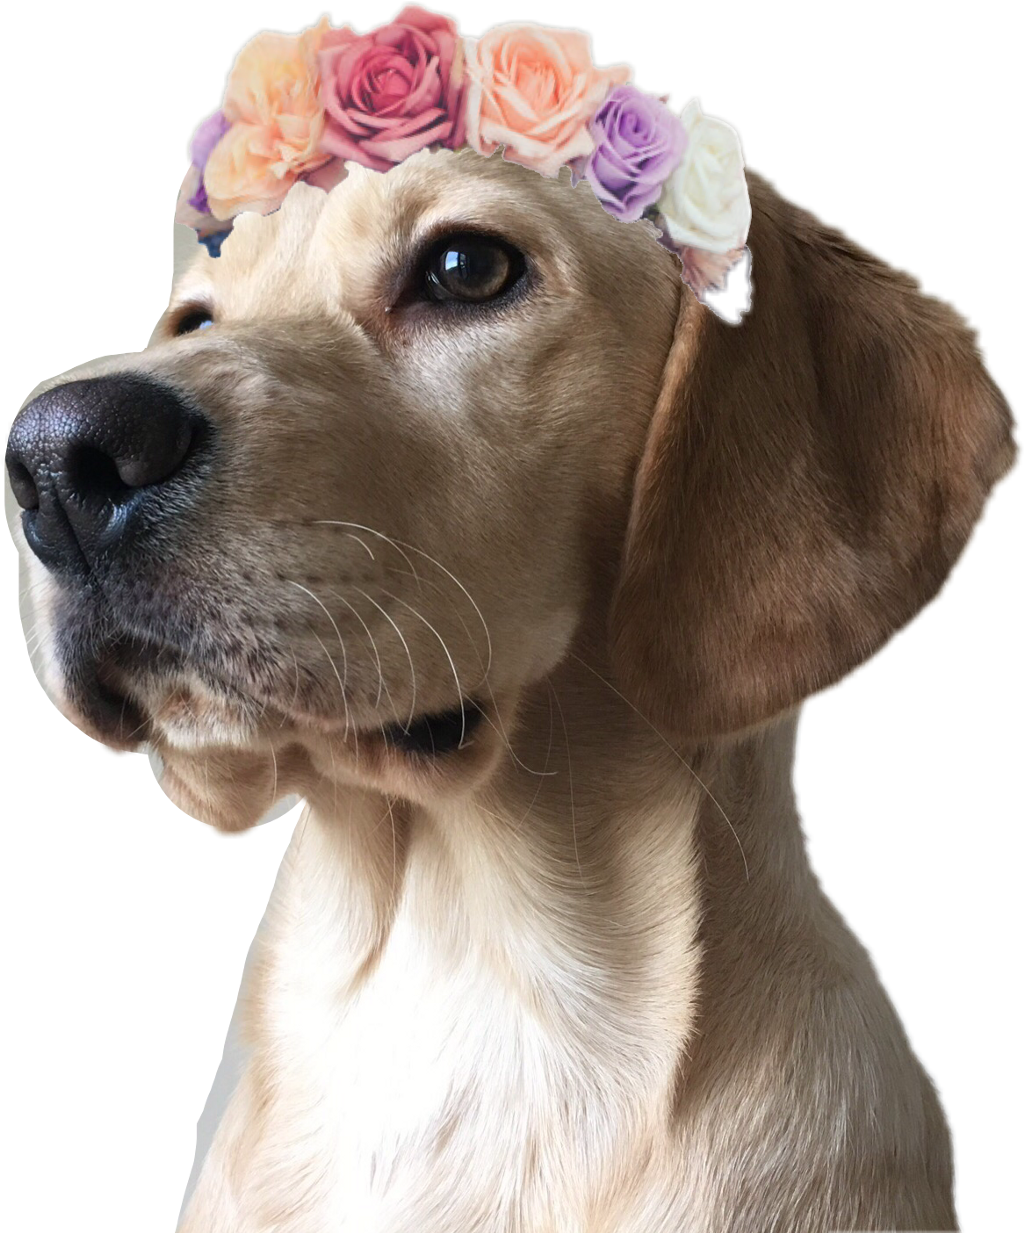 #dog #flowercrown